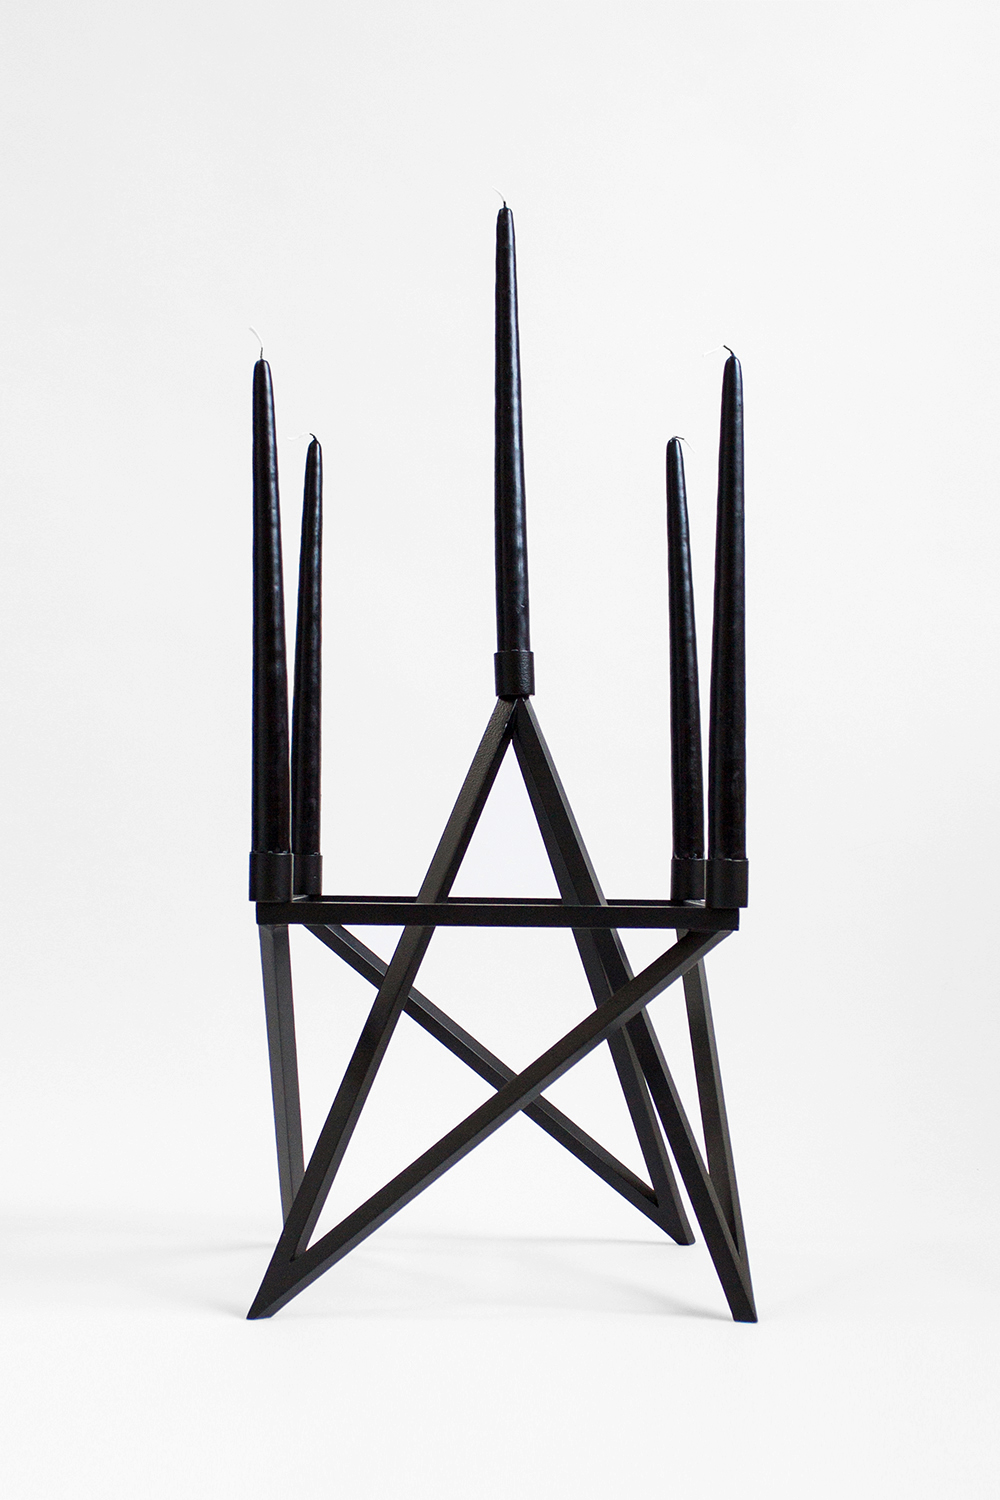 PAGAN CANDELABRA, 2014 BLACK POWDER COATED STEEL  PDF  -  INQUIRE  +  MORE